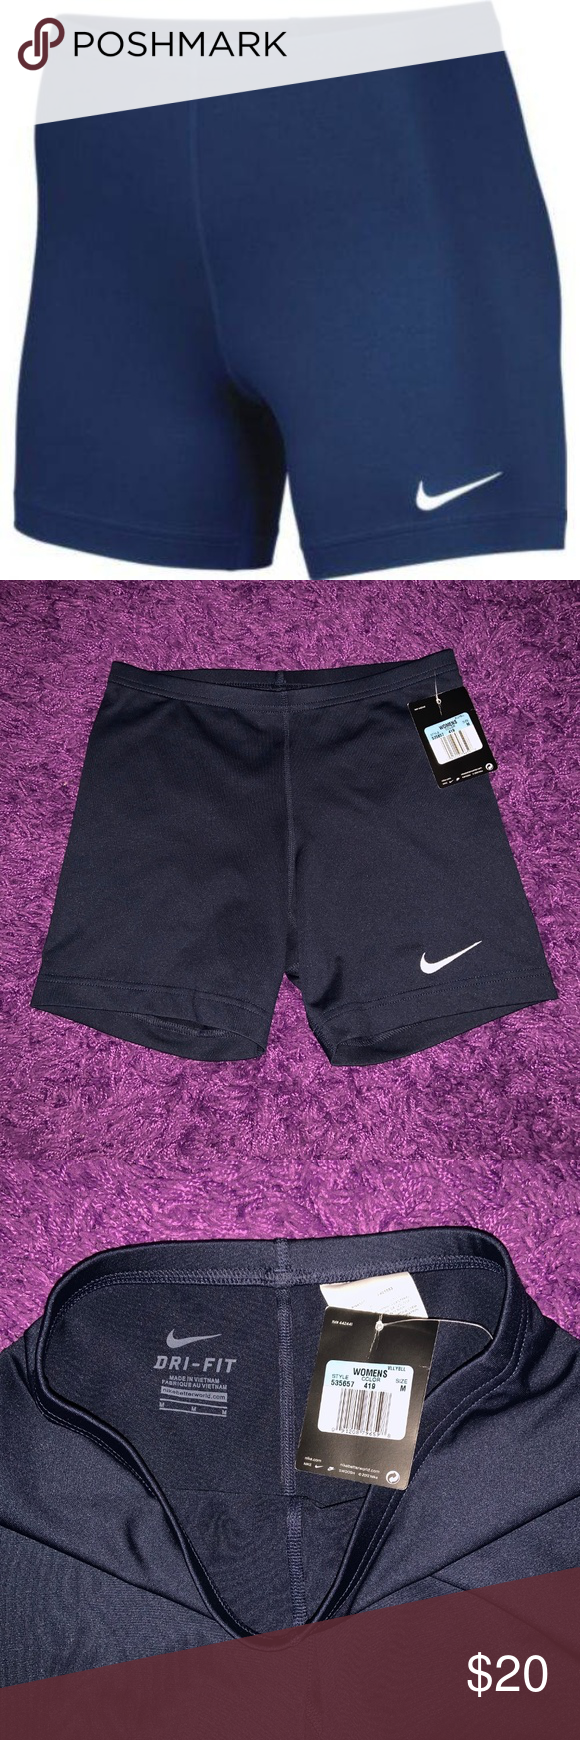 Nwt Nike Womens Volleyball Ace Short Nwt With Images Nike Women Women Volleyball Gym Shorts Womens